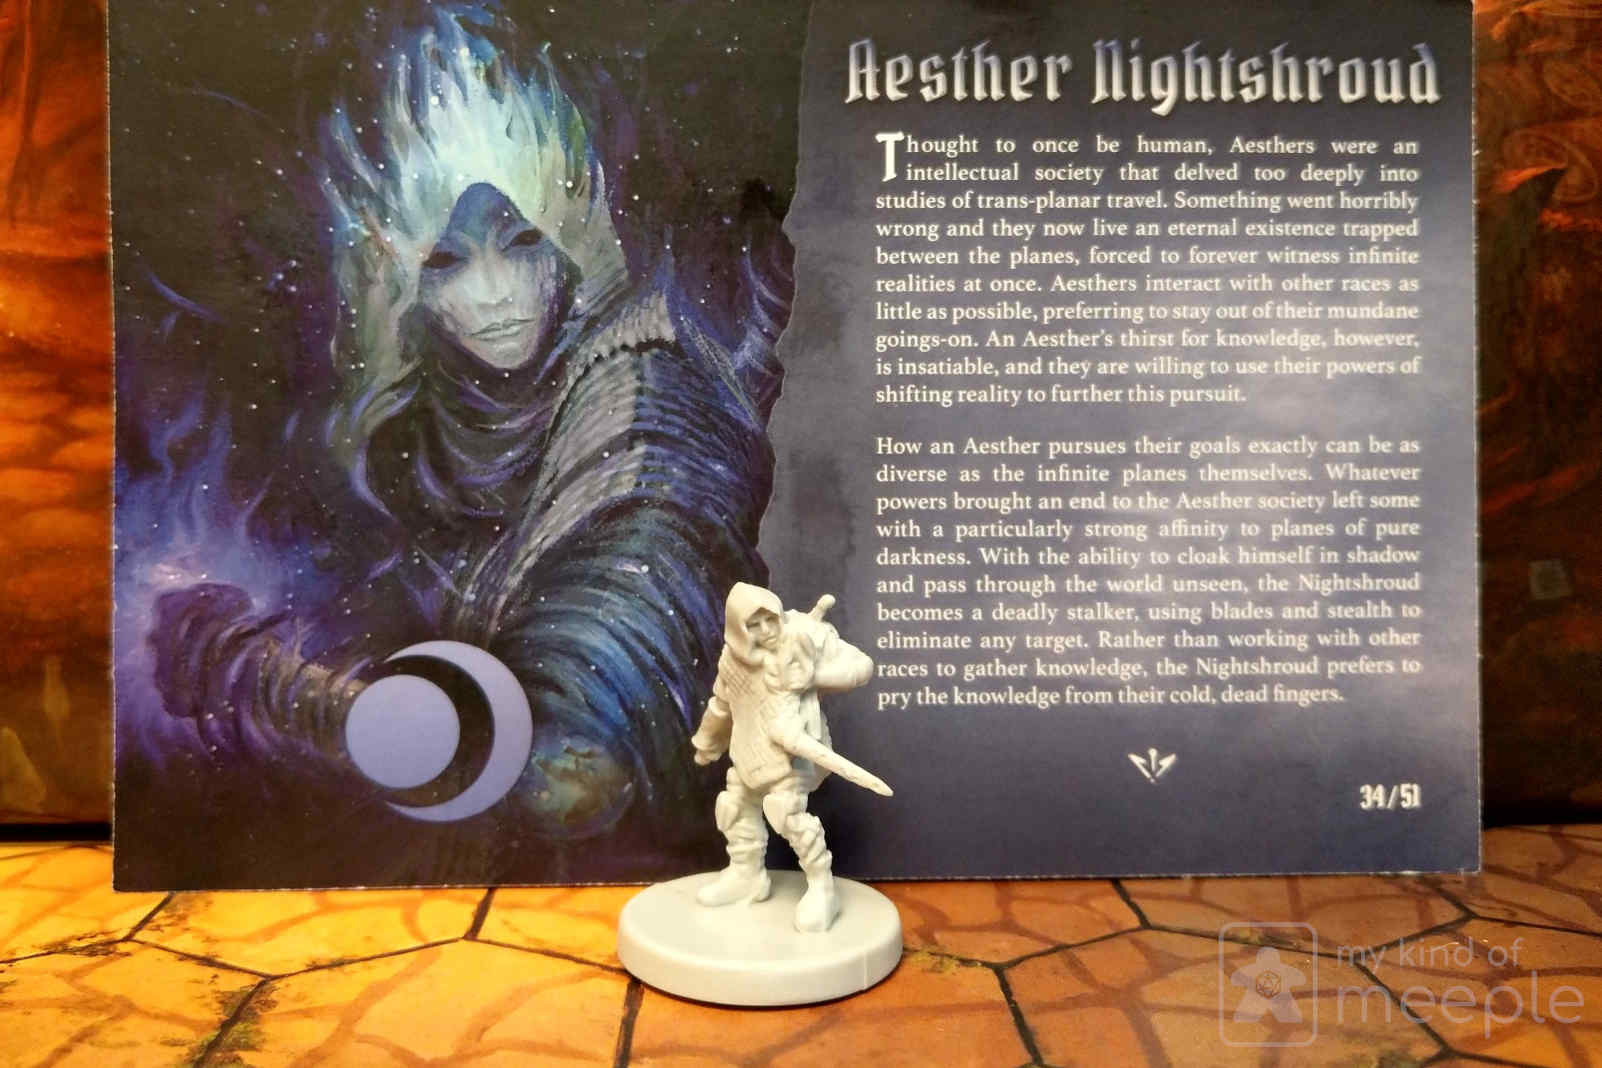 Gloomhaven Nightshroud Eclipse Moon Class miniature and board